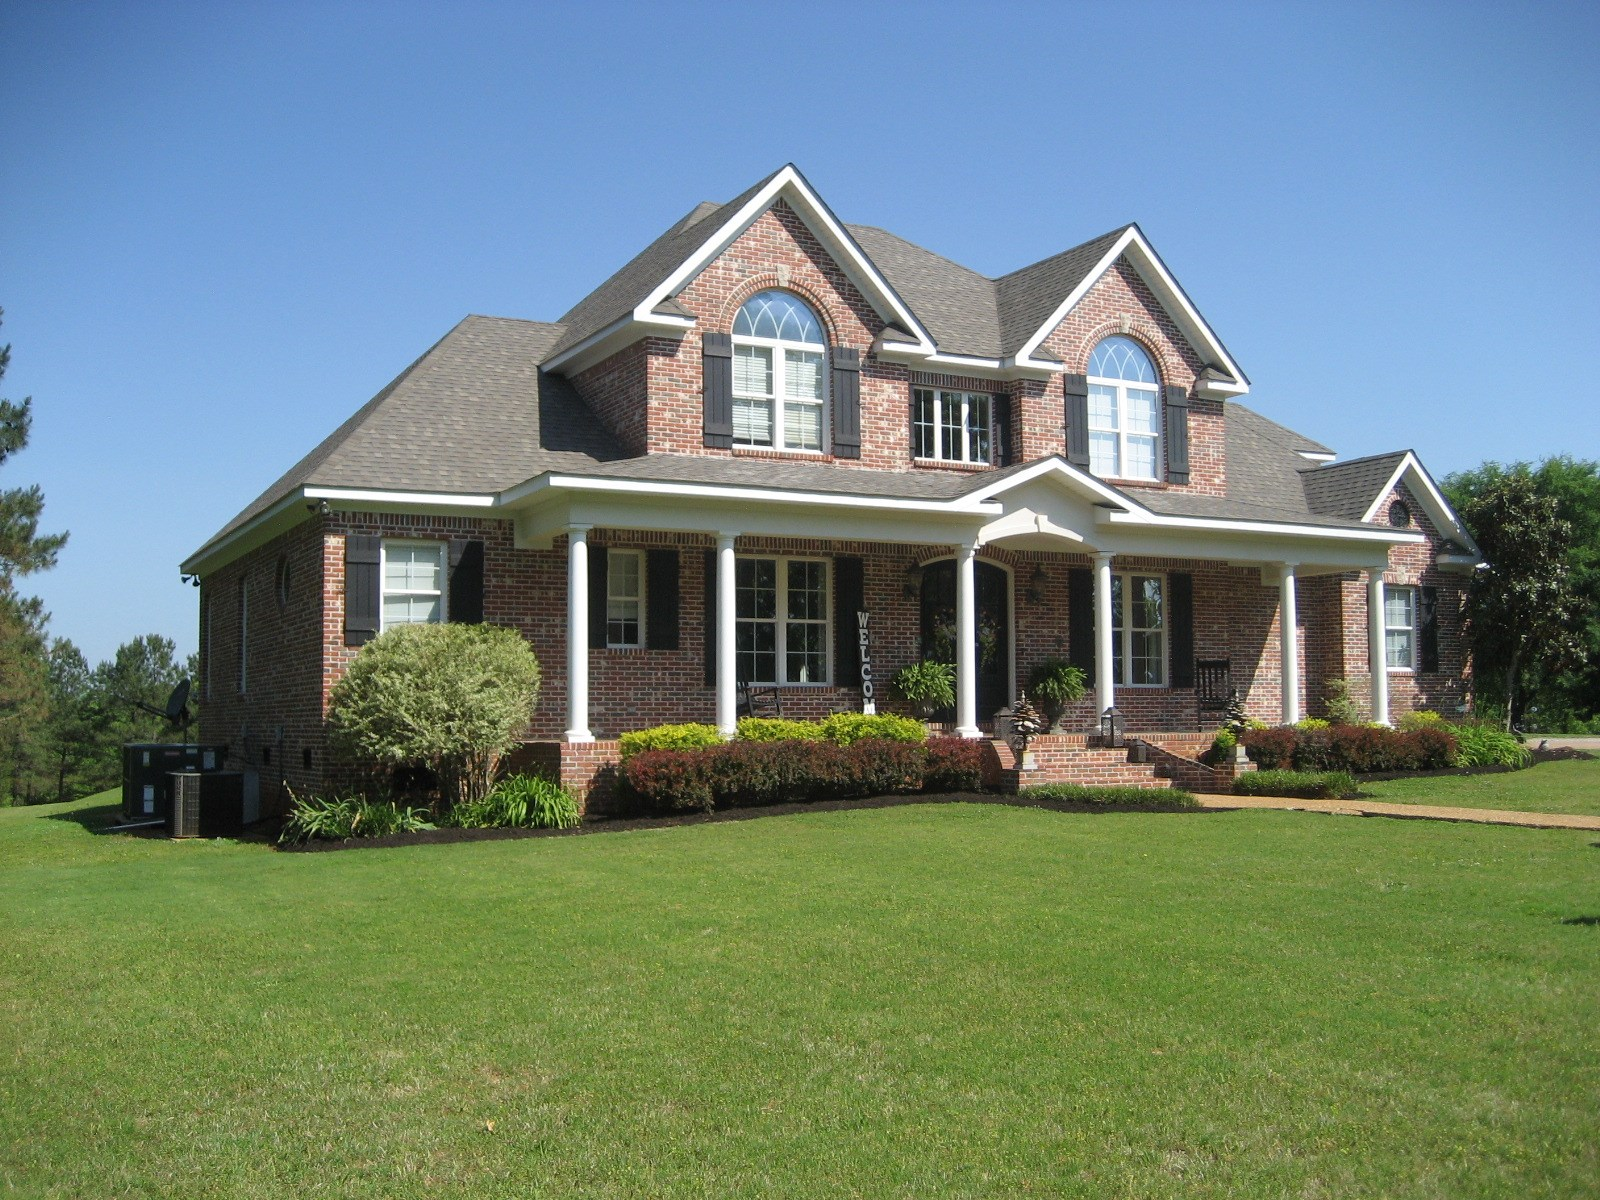 4 BEDROOM COUNTRY HOME FOR SALE IN SHILOH TN, POOL